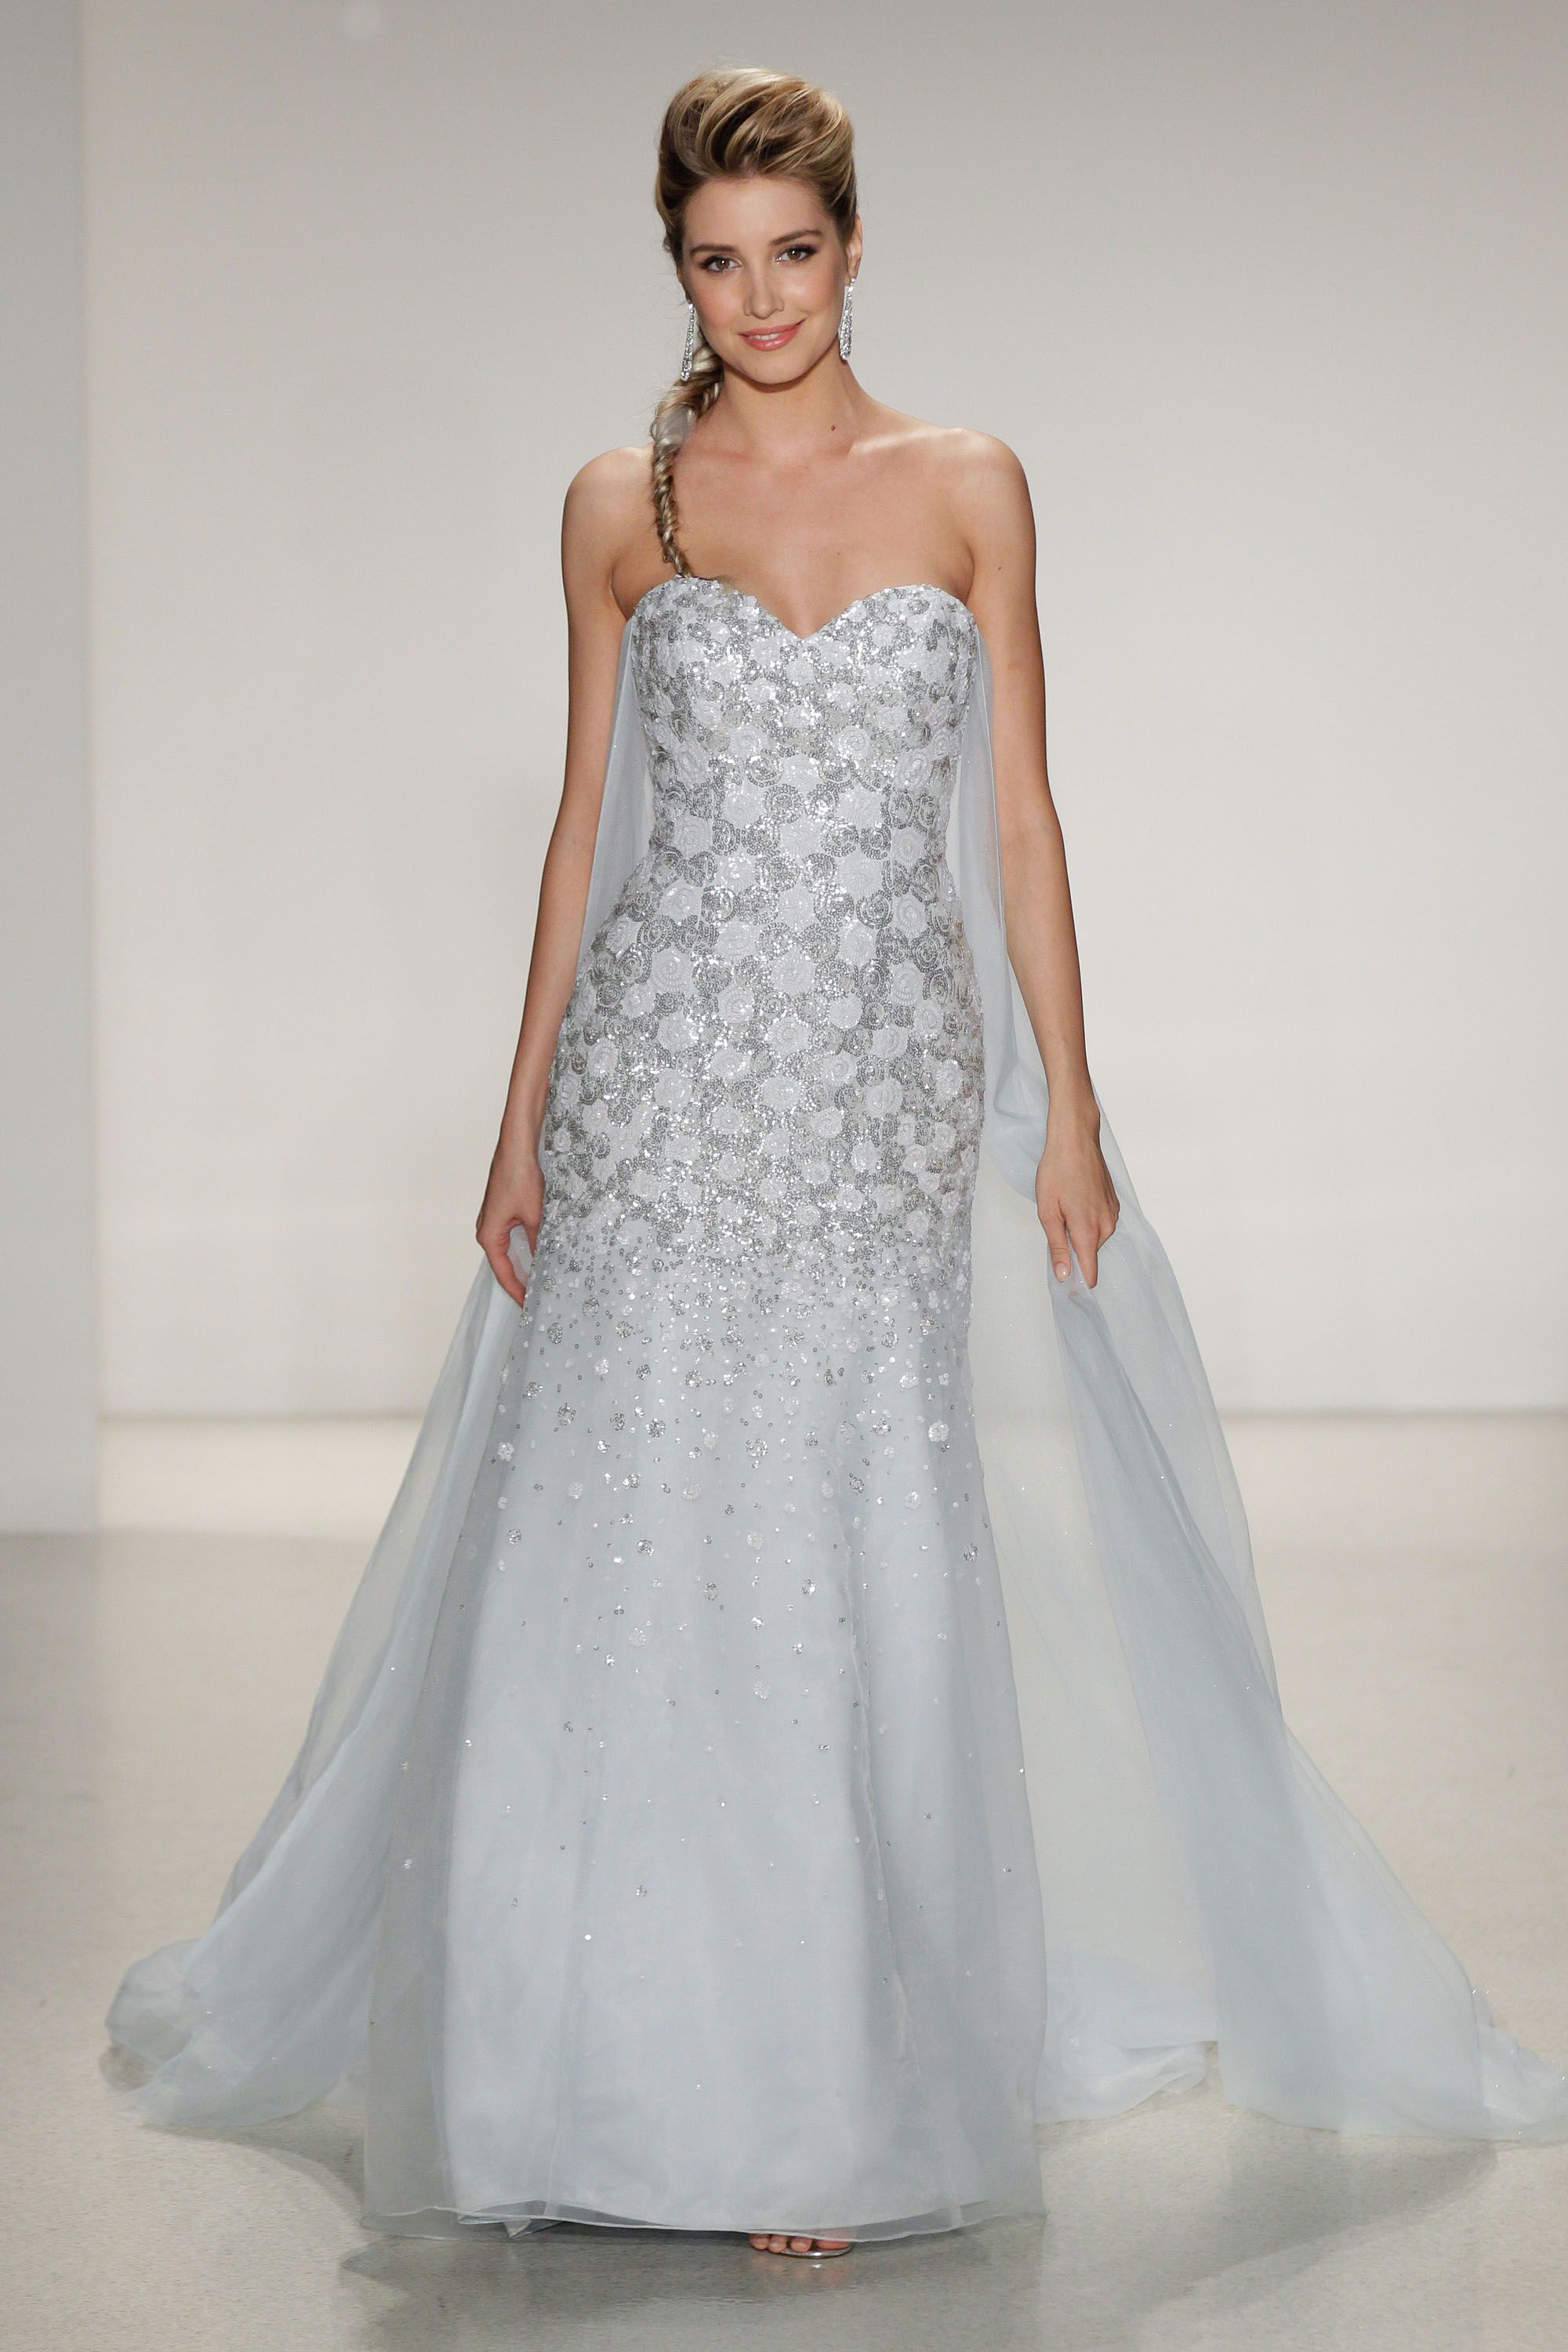 Oh Look Heres Your Frozen Themed Wedding Dress Irl Jolie Clothing Rhey Tulle Skirt